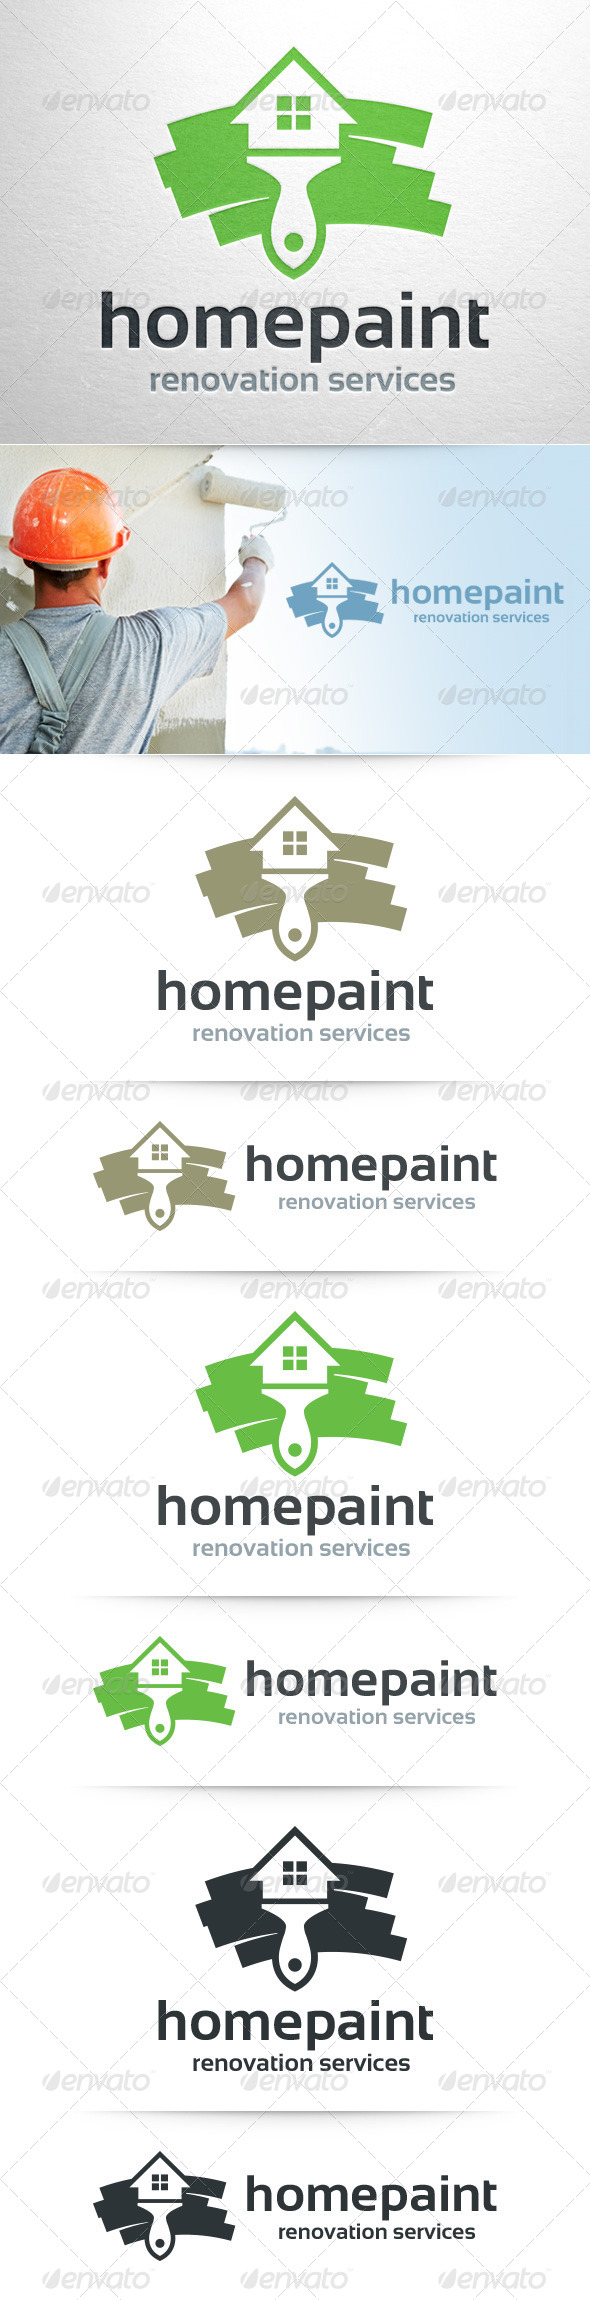 GraphicRiver Home Painter Logo Template 8523715